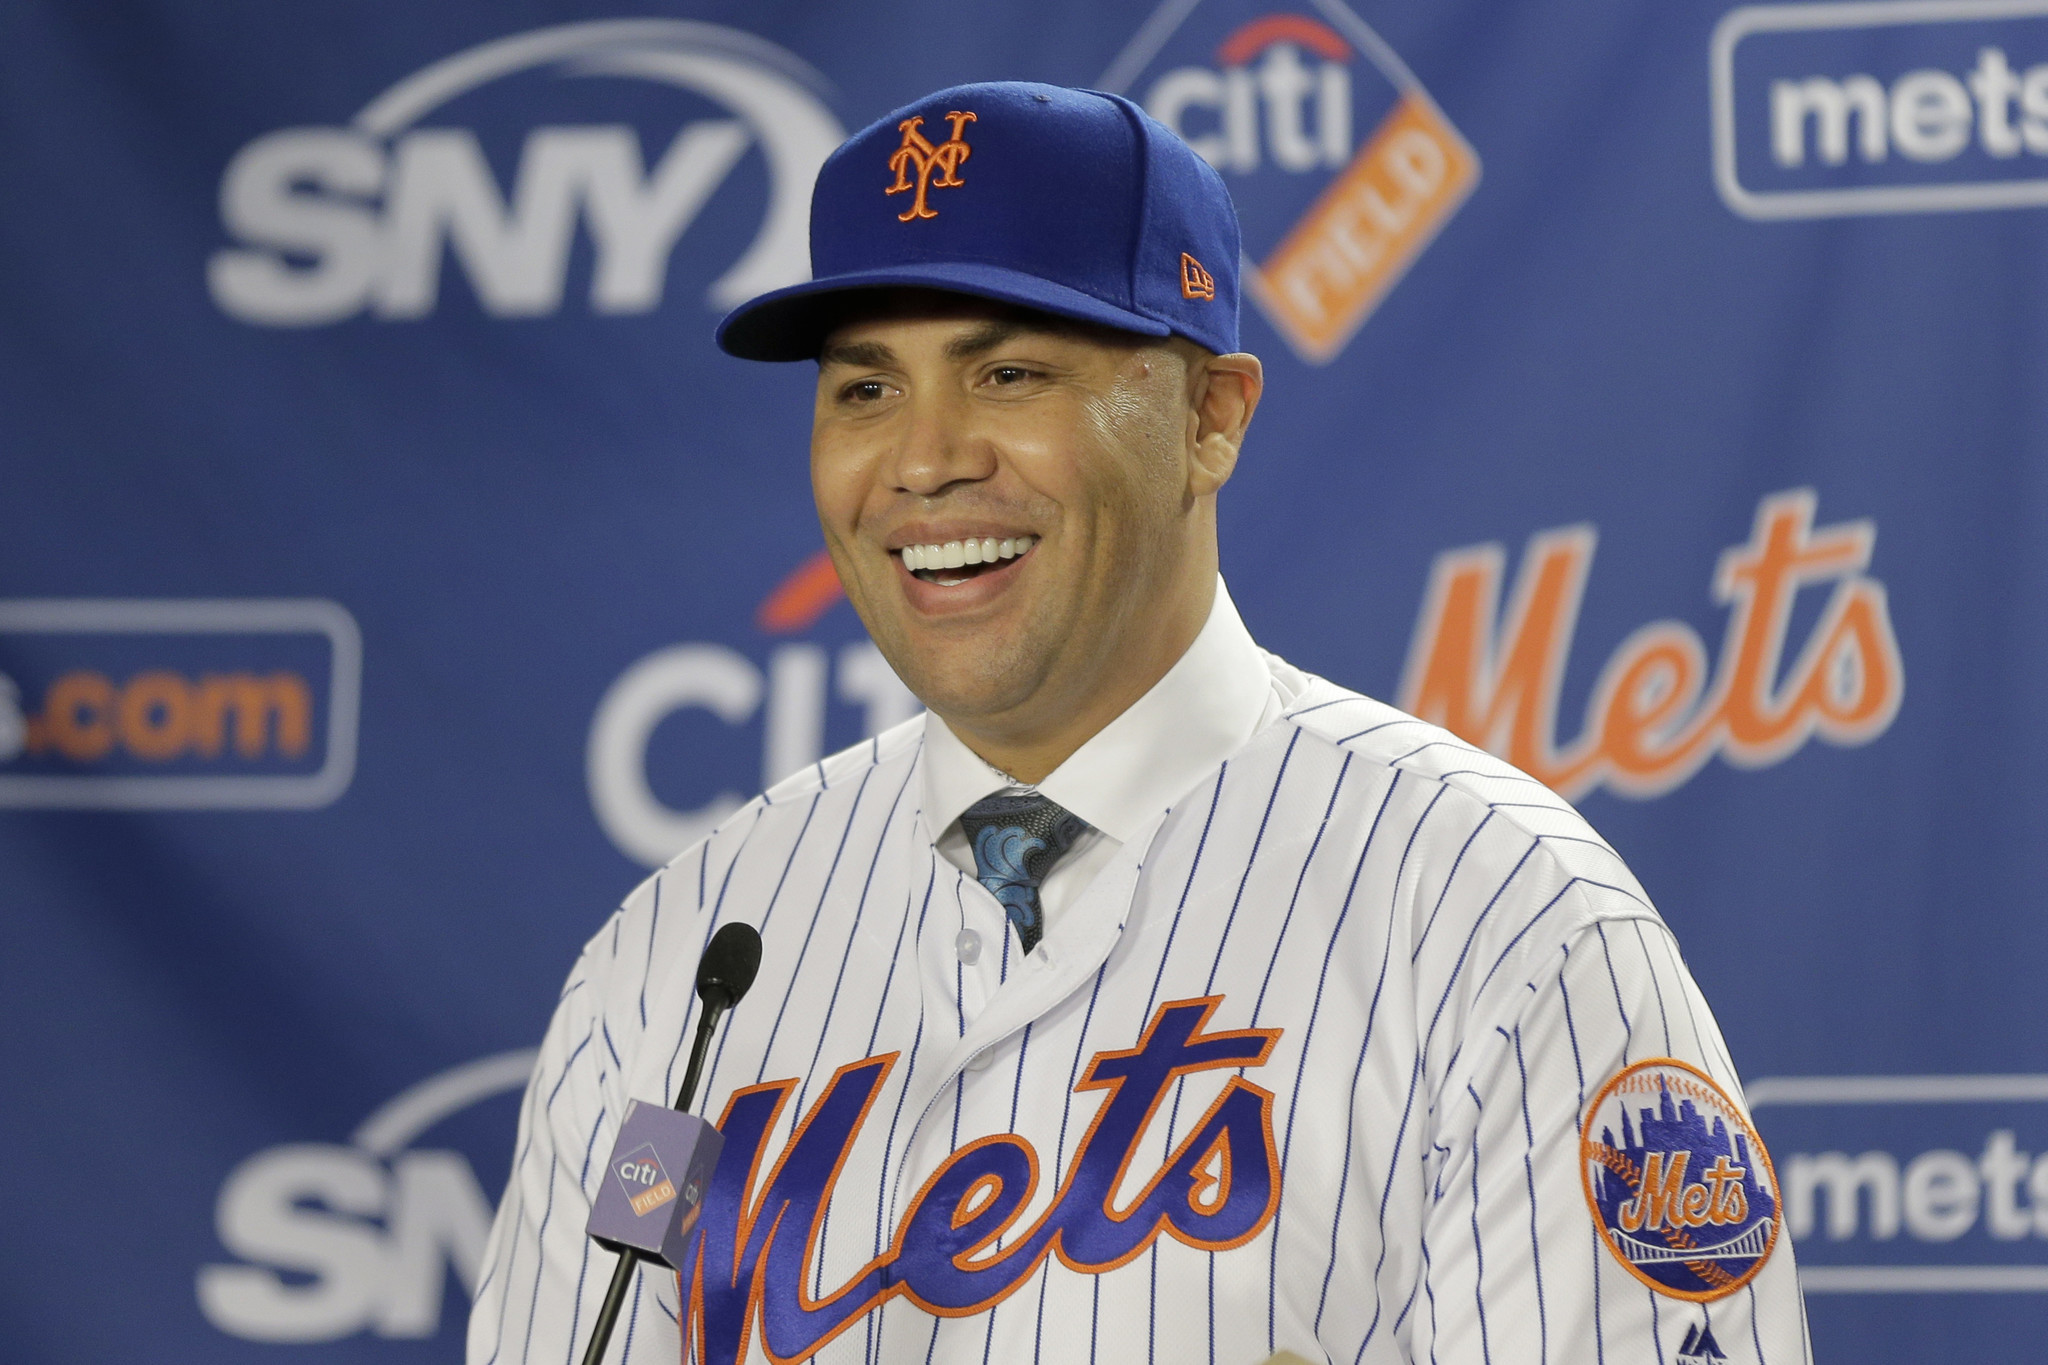 Carlos Beltran out as Mets manager